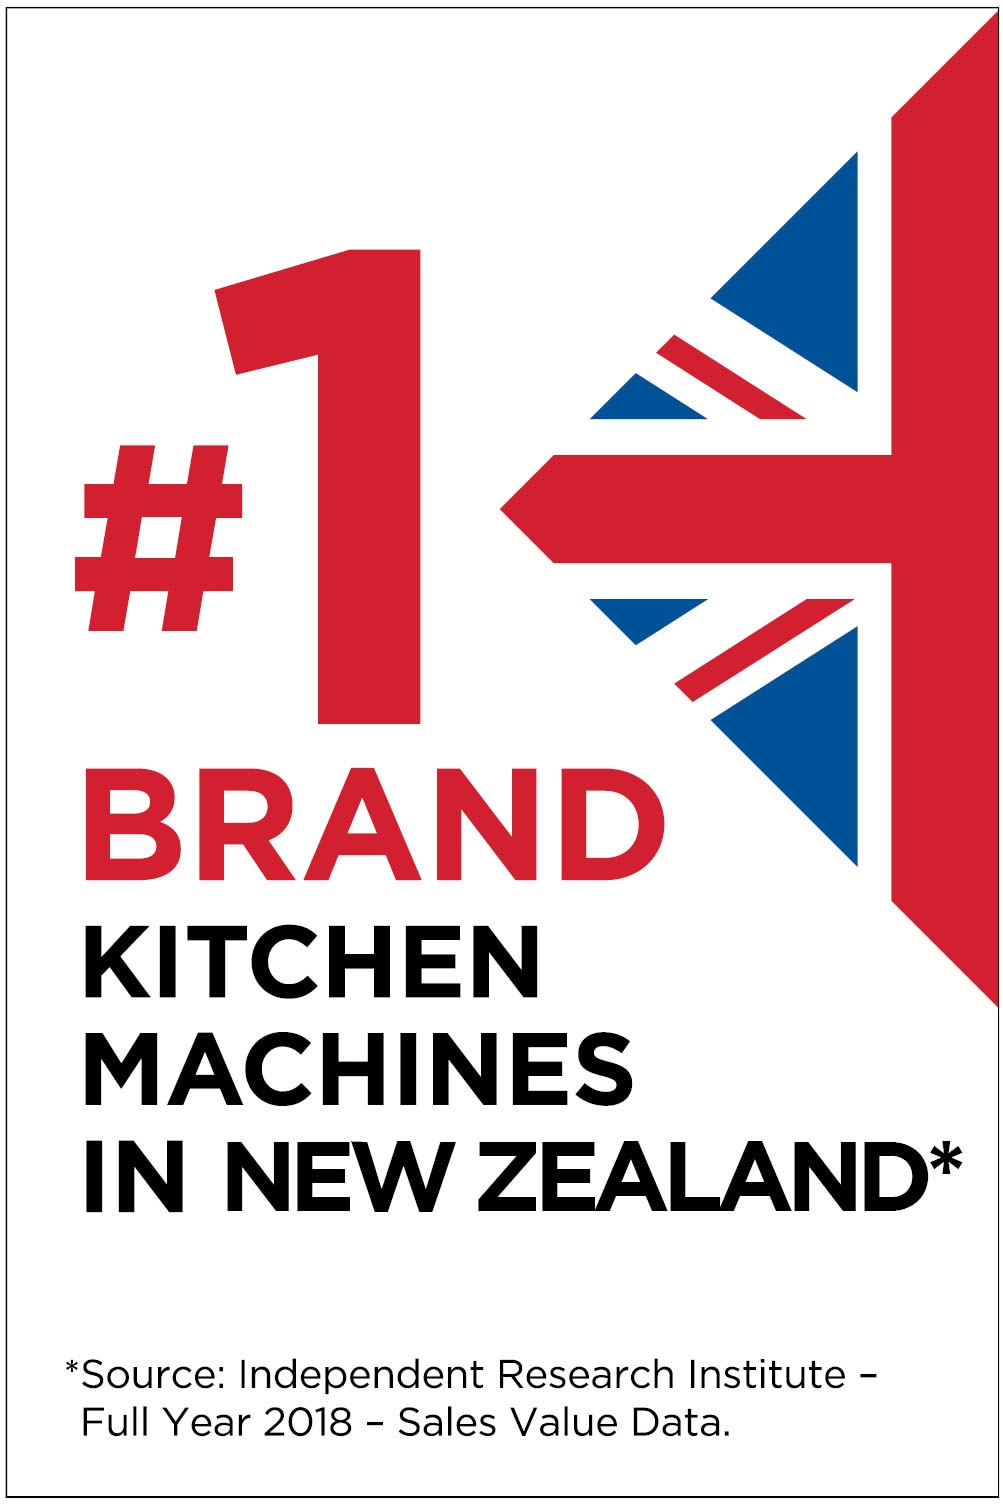 N1 kitchen machines 2019